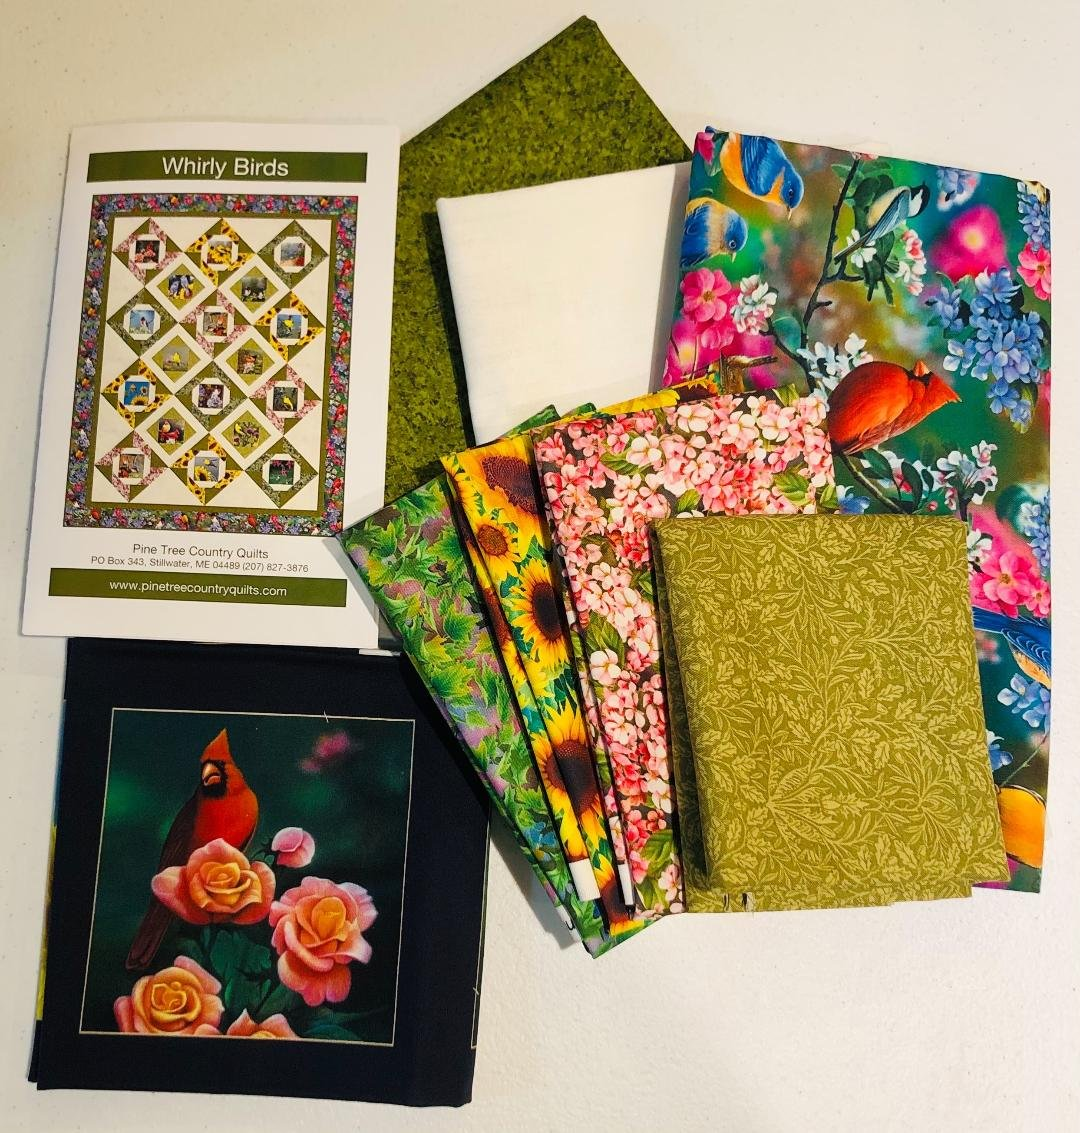 Whirly Birds Quilt Kit